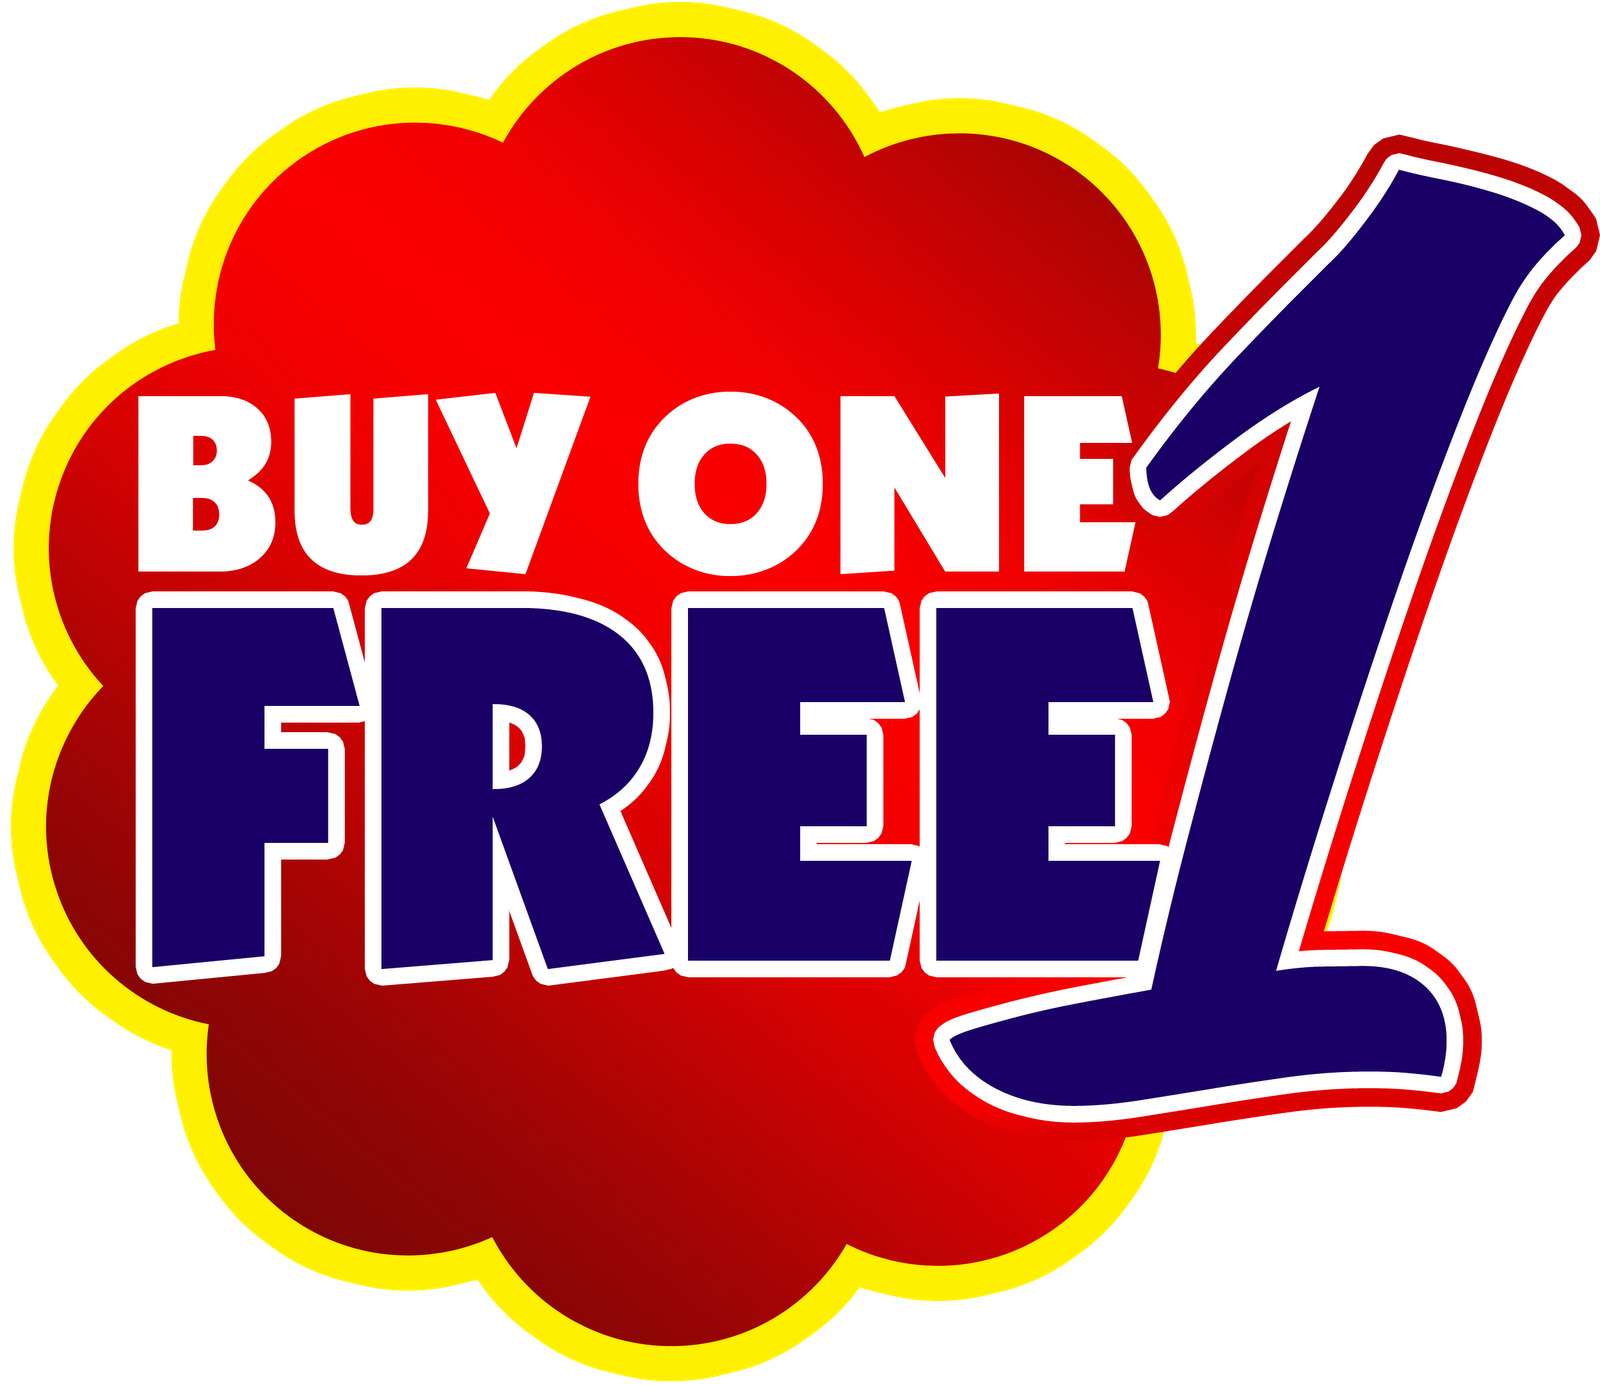 Buy 1 Get 1 Free PNG Images Transparent Free Download.